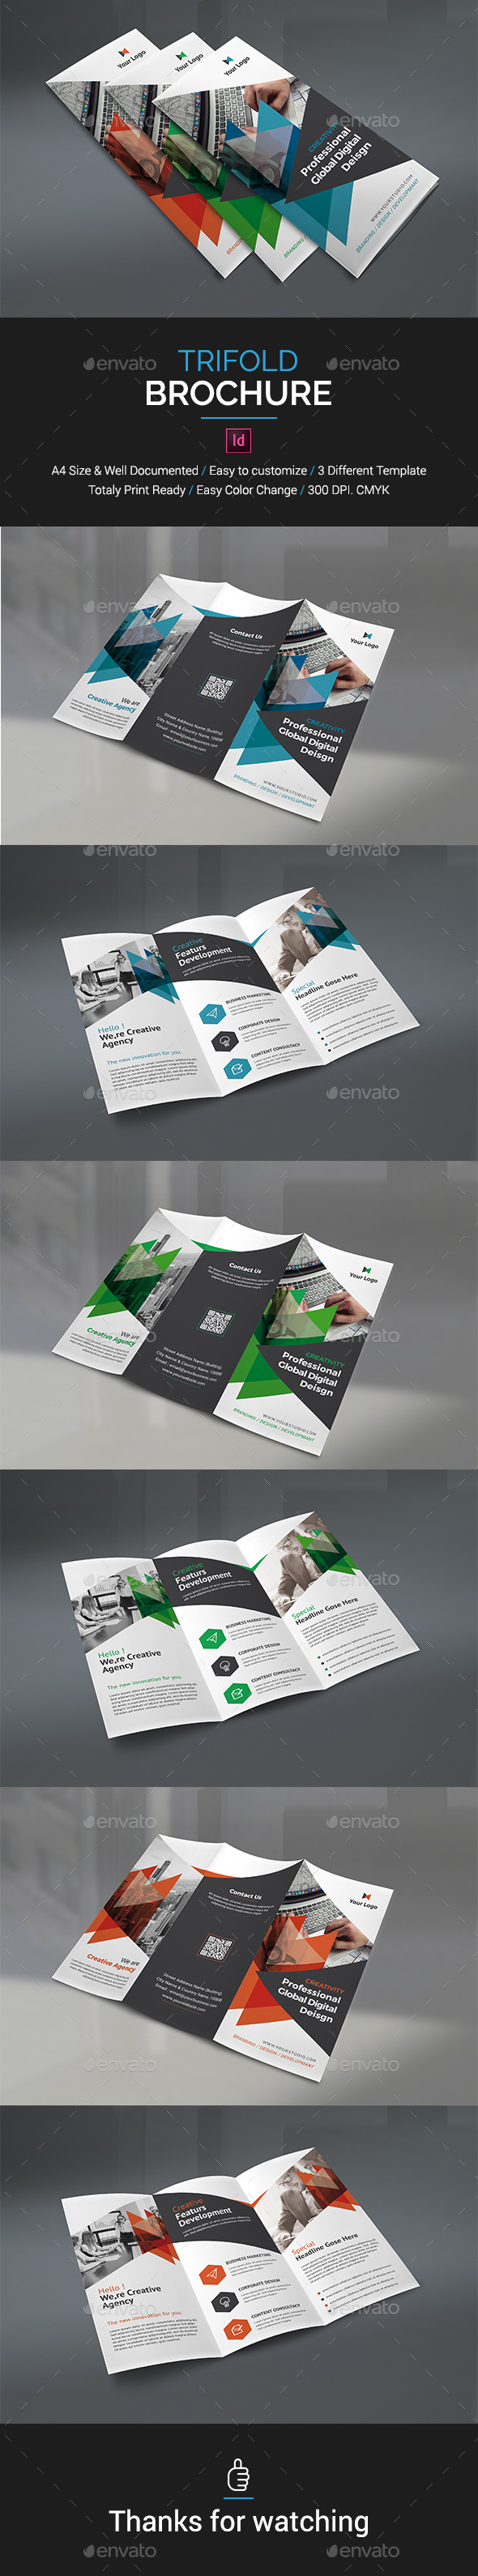 Trifold Brochure Template InDesign INDD   Brochure Templates ...